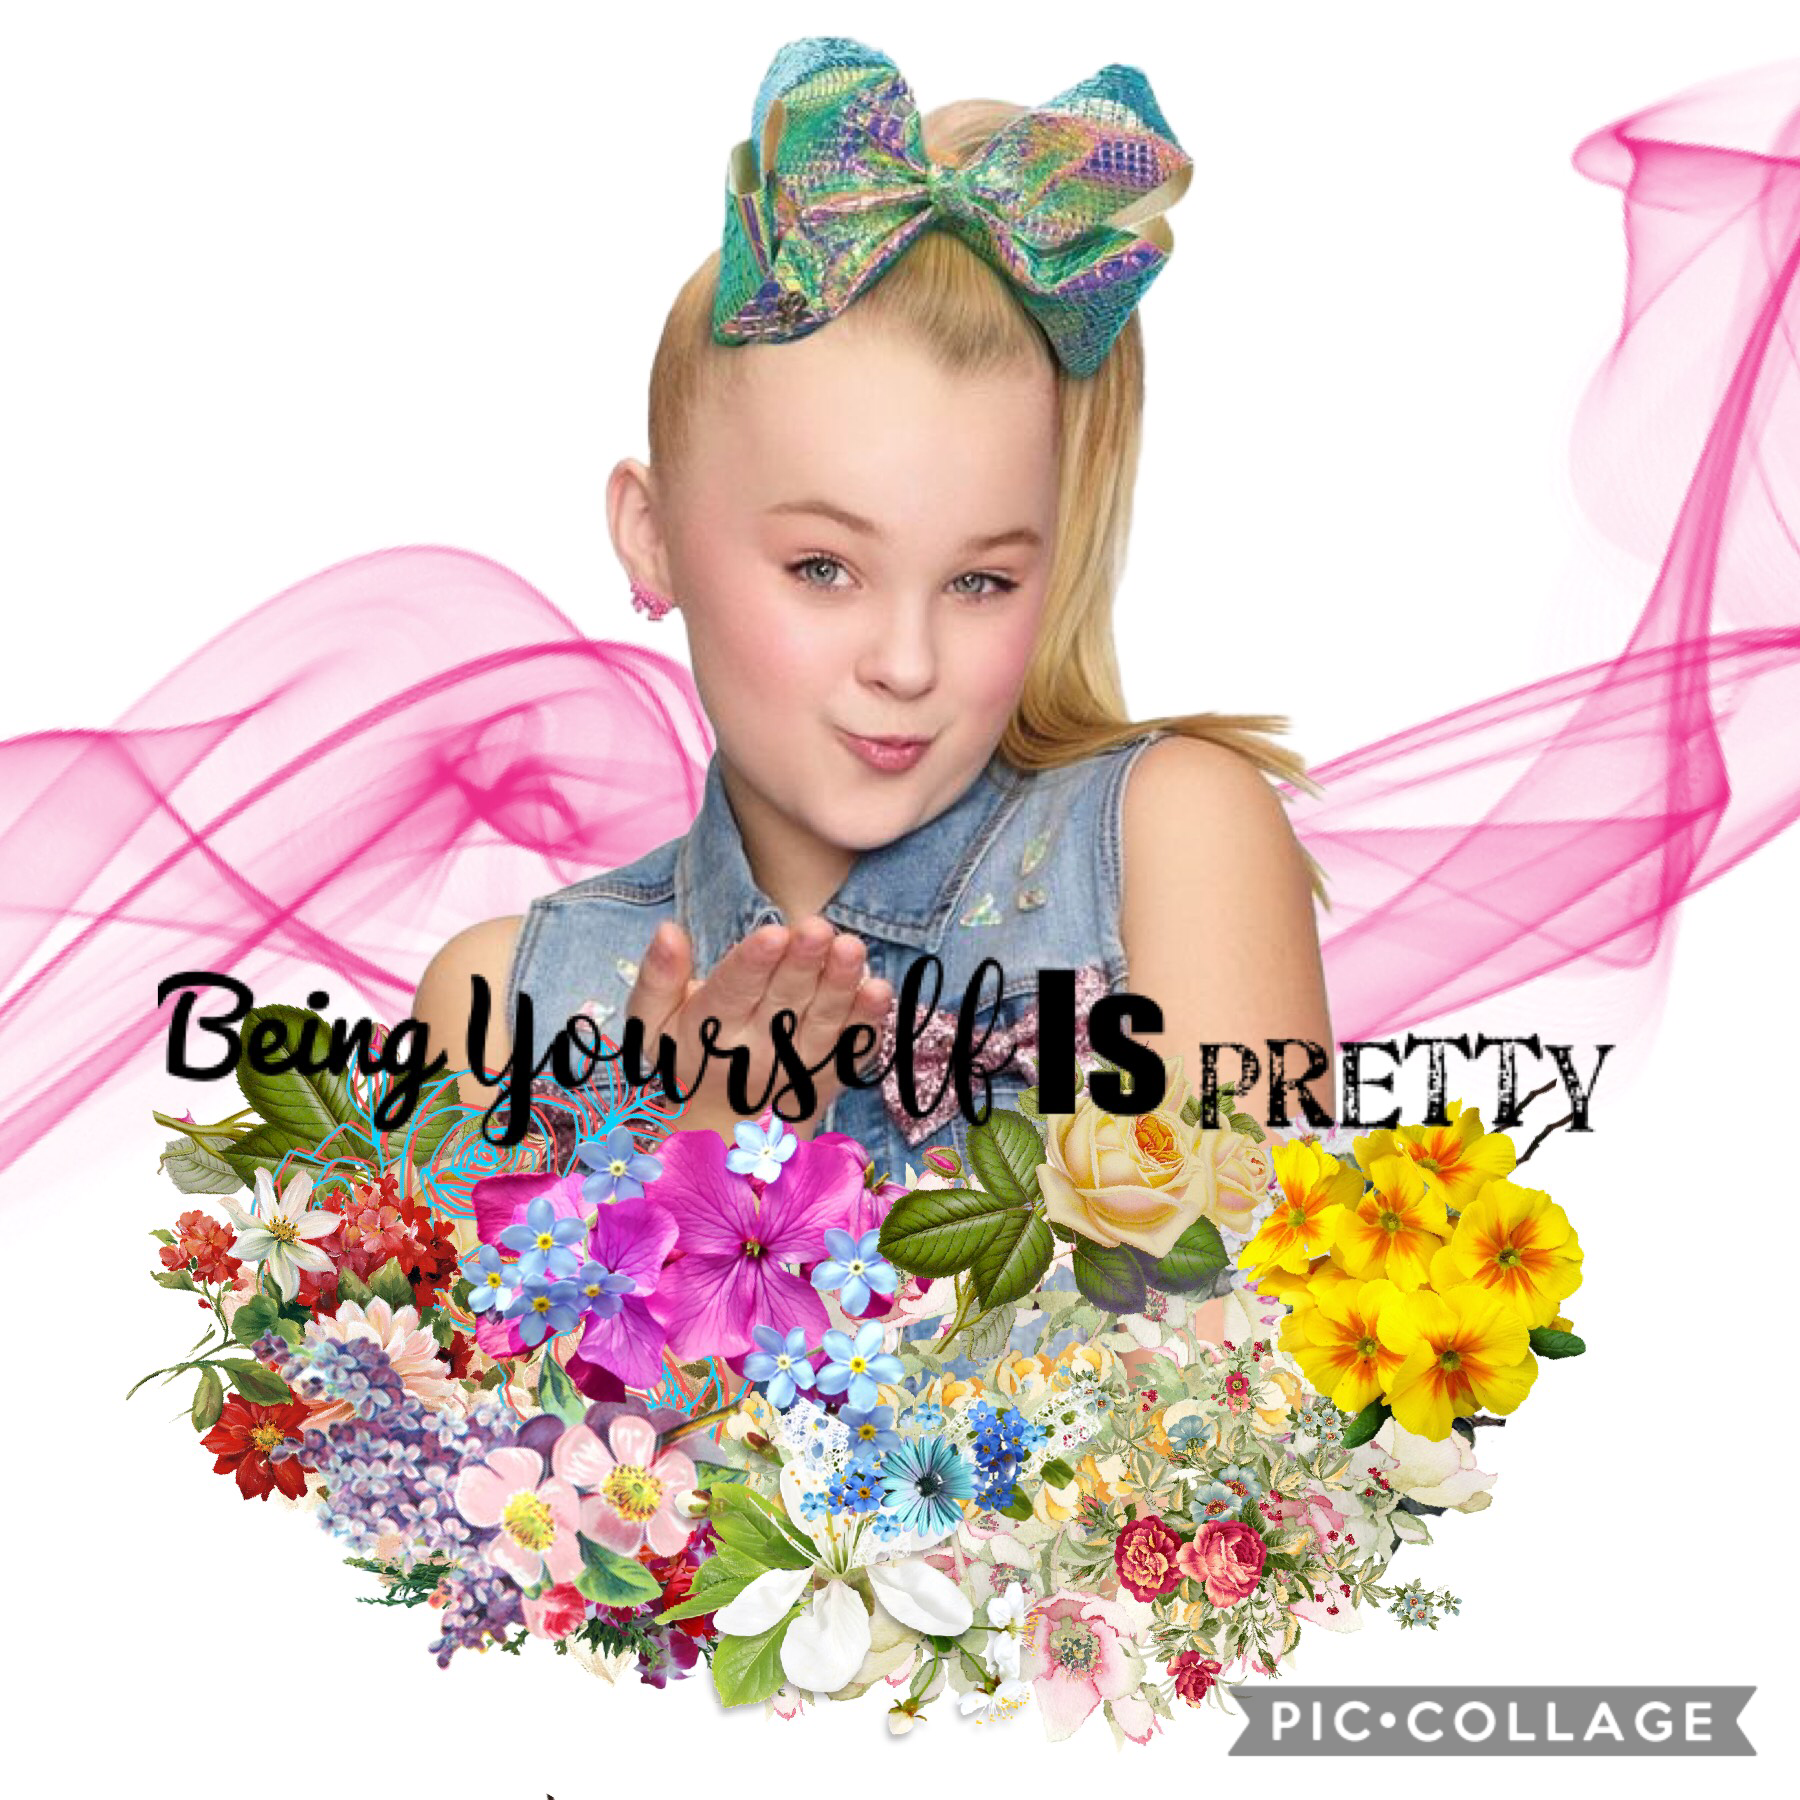 Tap   QOTD: which emoji 🌼 or 🦋 AOTD: 🌼 This collage is inspired by foxygirl22  Sorry I haven't been very active it was because of school and homework also have a great day!❤️